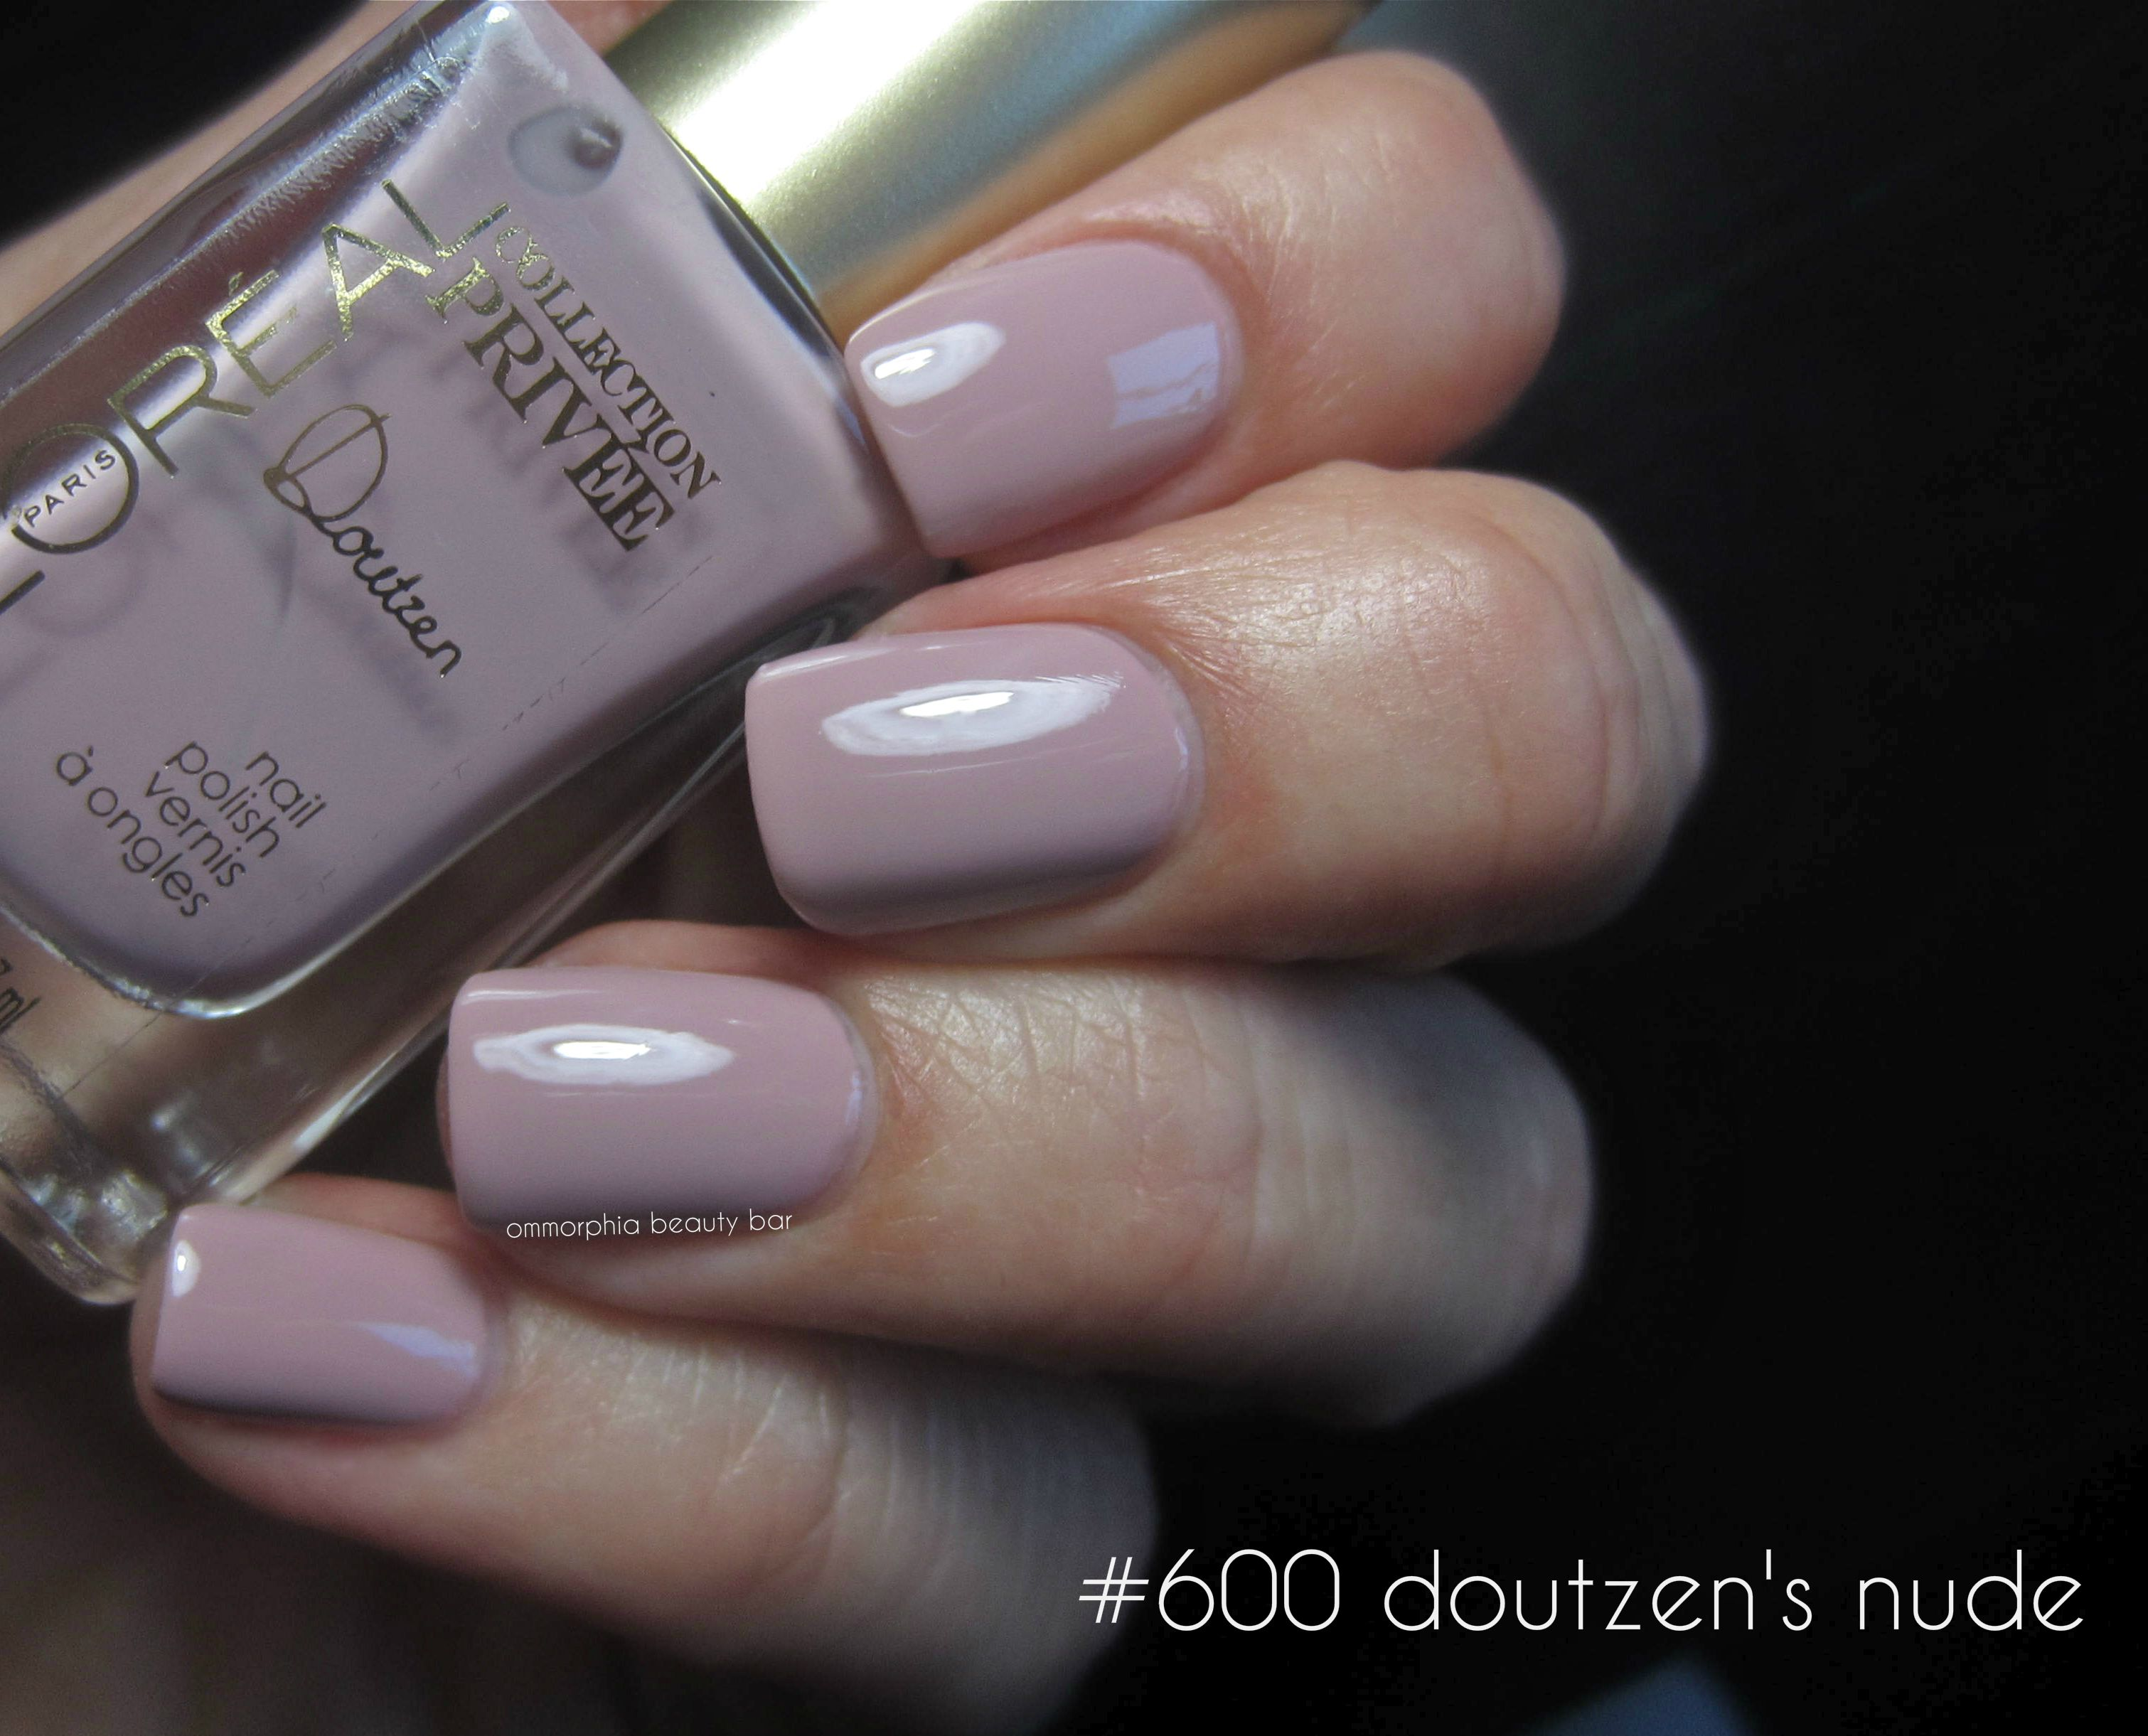 L'Oréal #600 Doutzen's Nude swatch | Nail varnish and nails ...